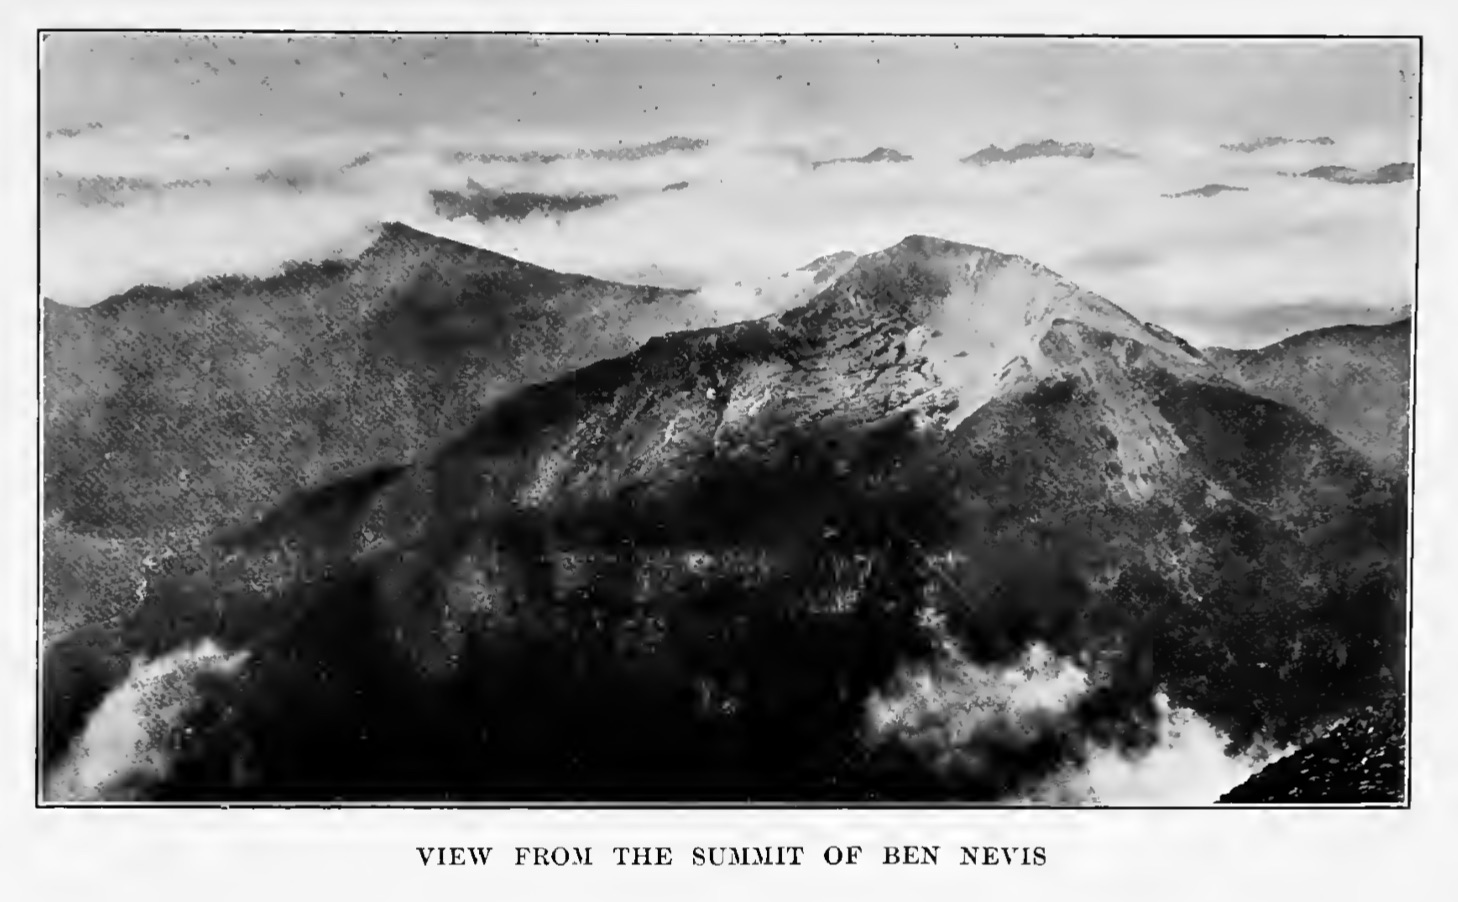 View from the Summit of Ben Nevis, in Albert Elmer Hancock's 1908 life of Keats         (click to enlarge)